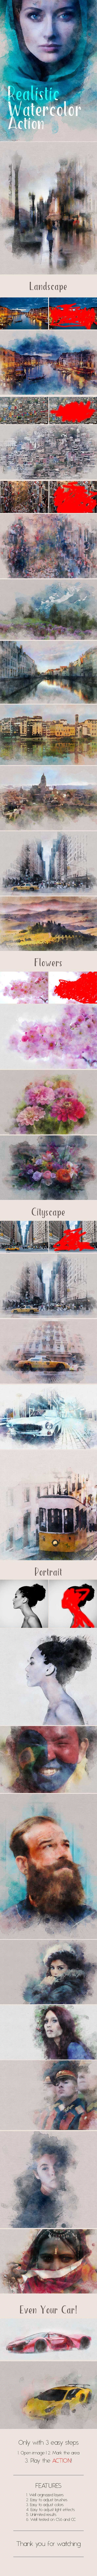 Realistic Watercolor Action - Photo Effects Actions Download here: https://graphicriver.net/item/realistic-watercolor-action/20120381?ref=classicdesignp